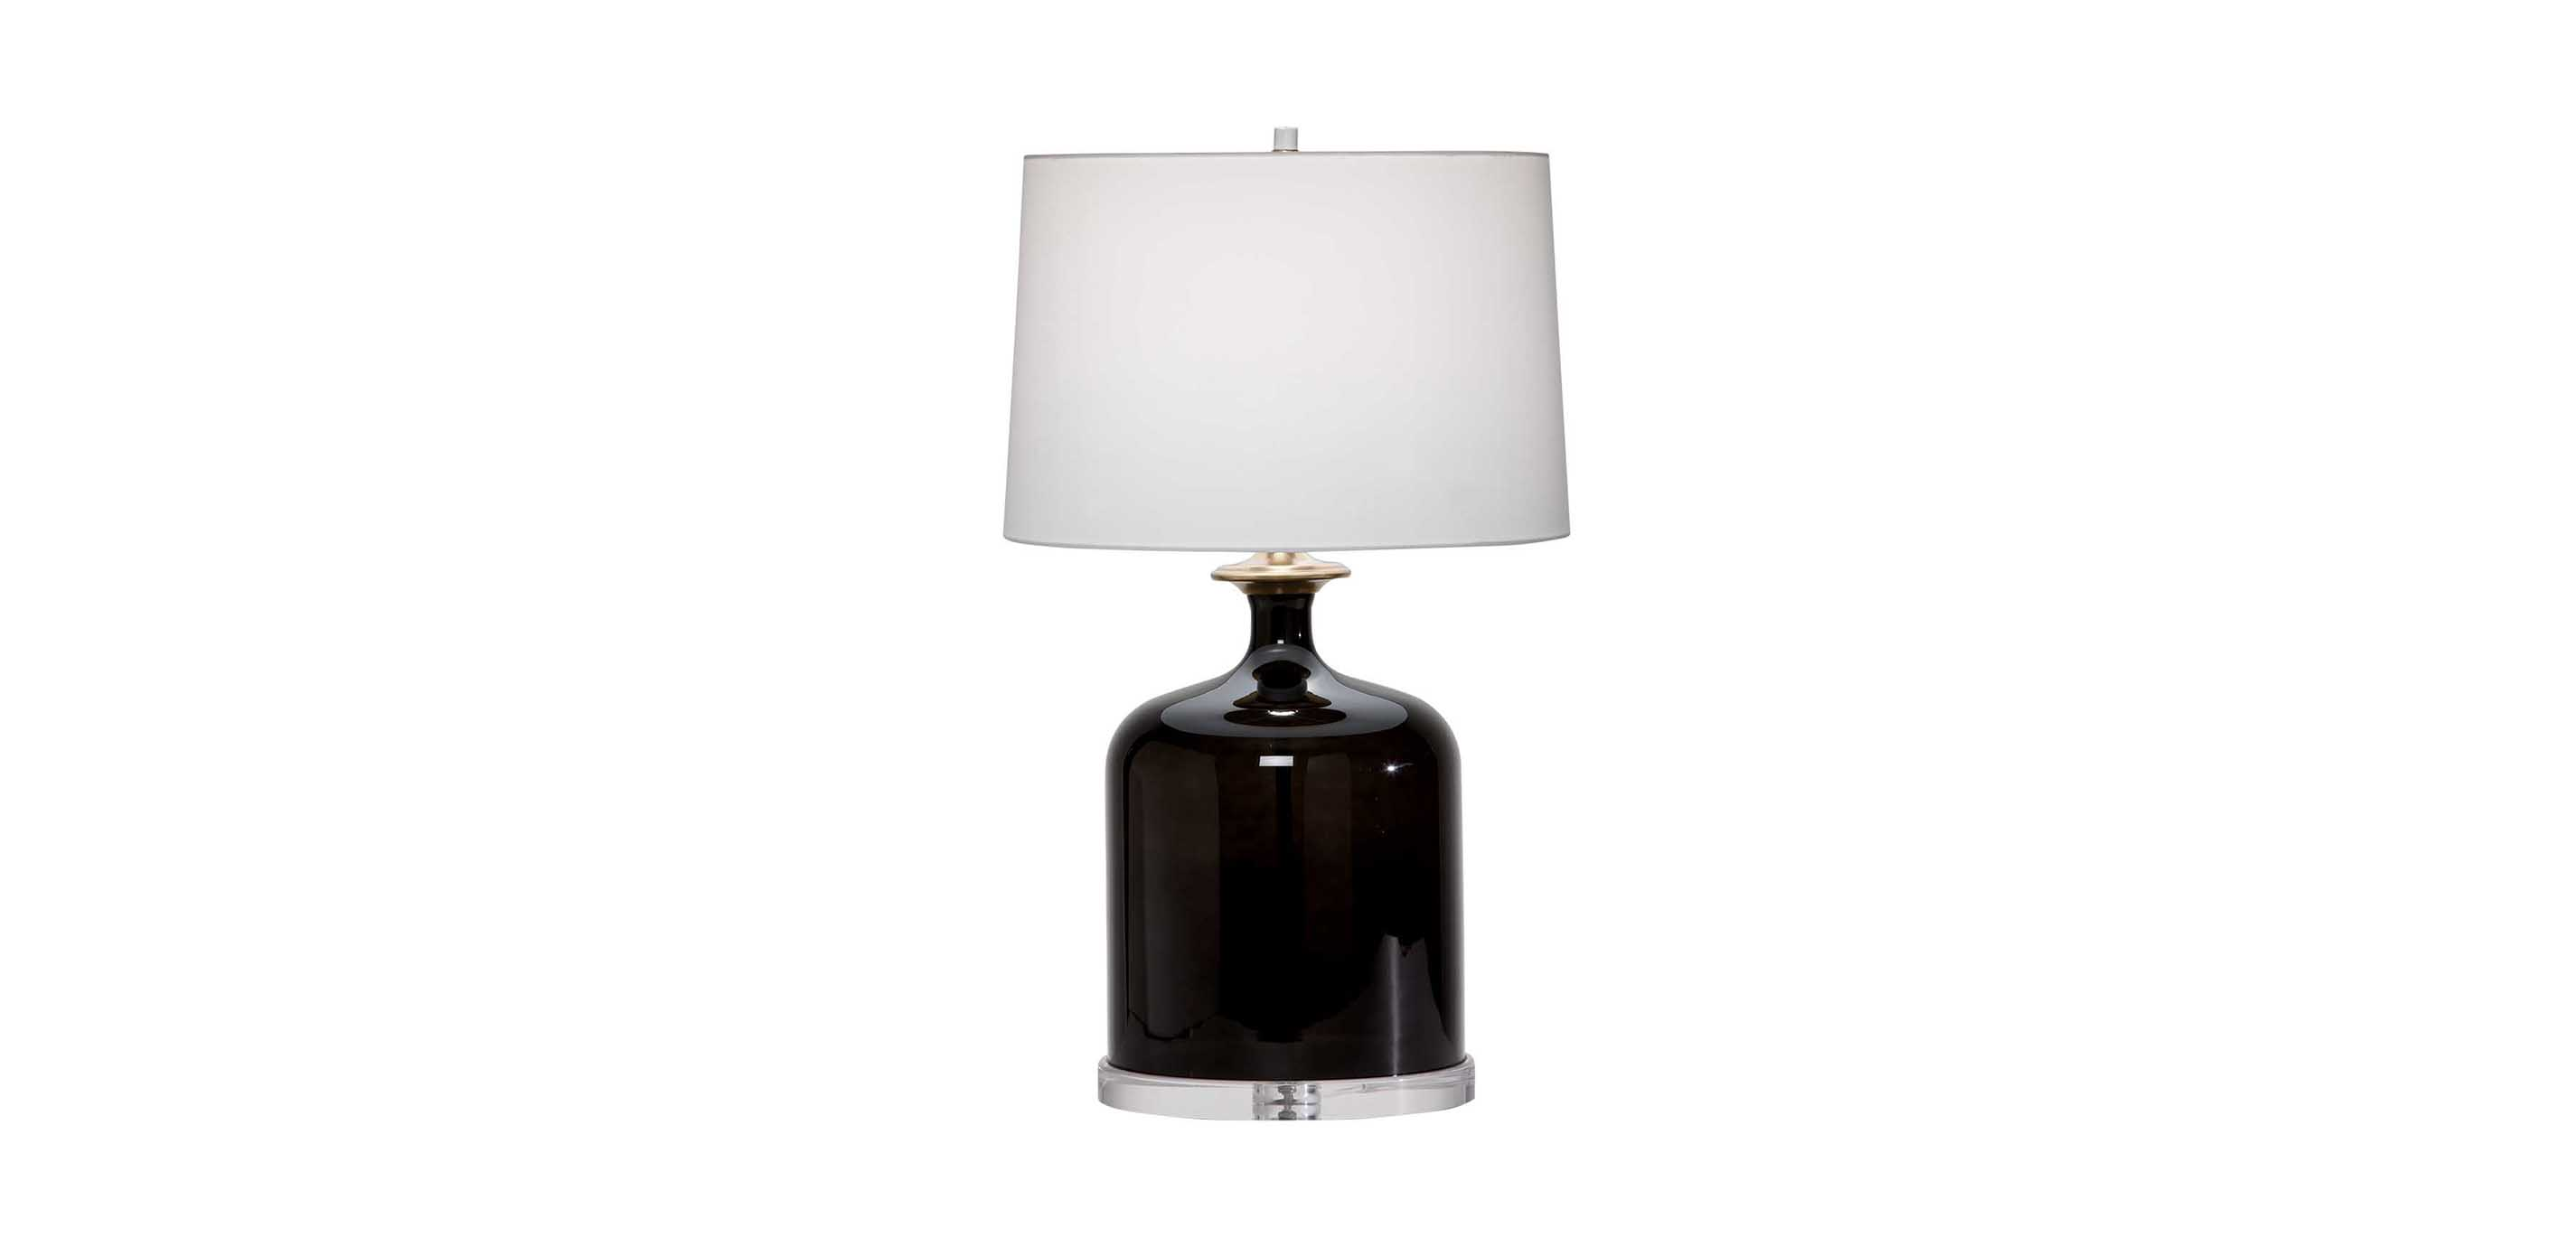 Nolan table lamp table lamps ethan allen images null aloadofball